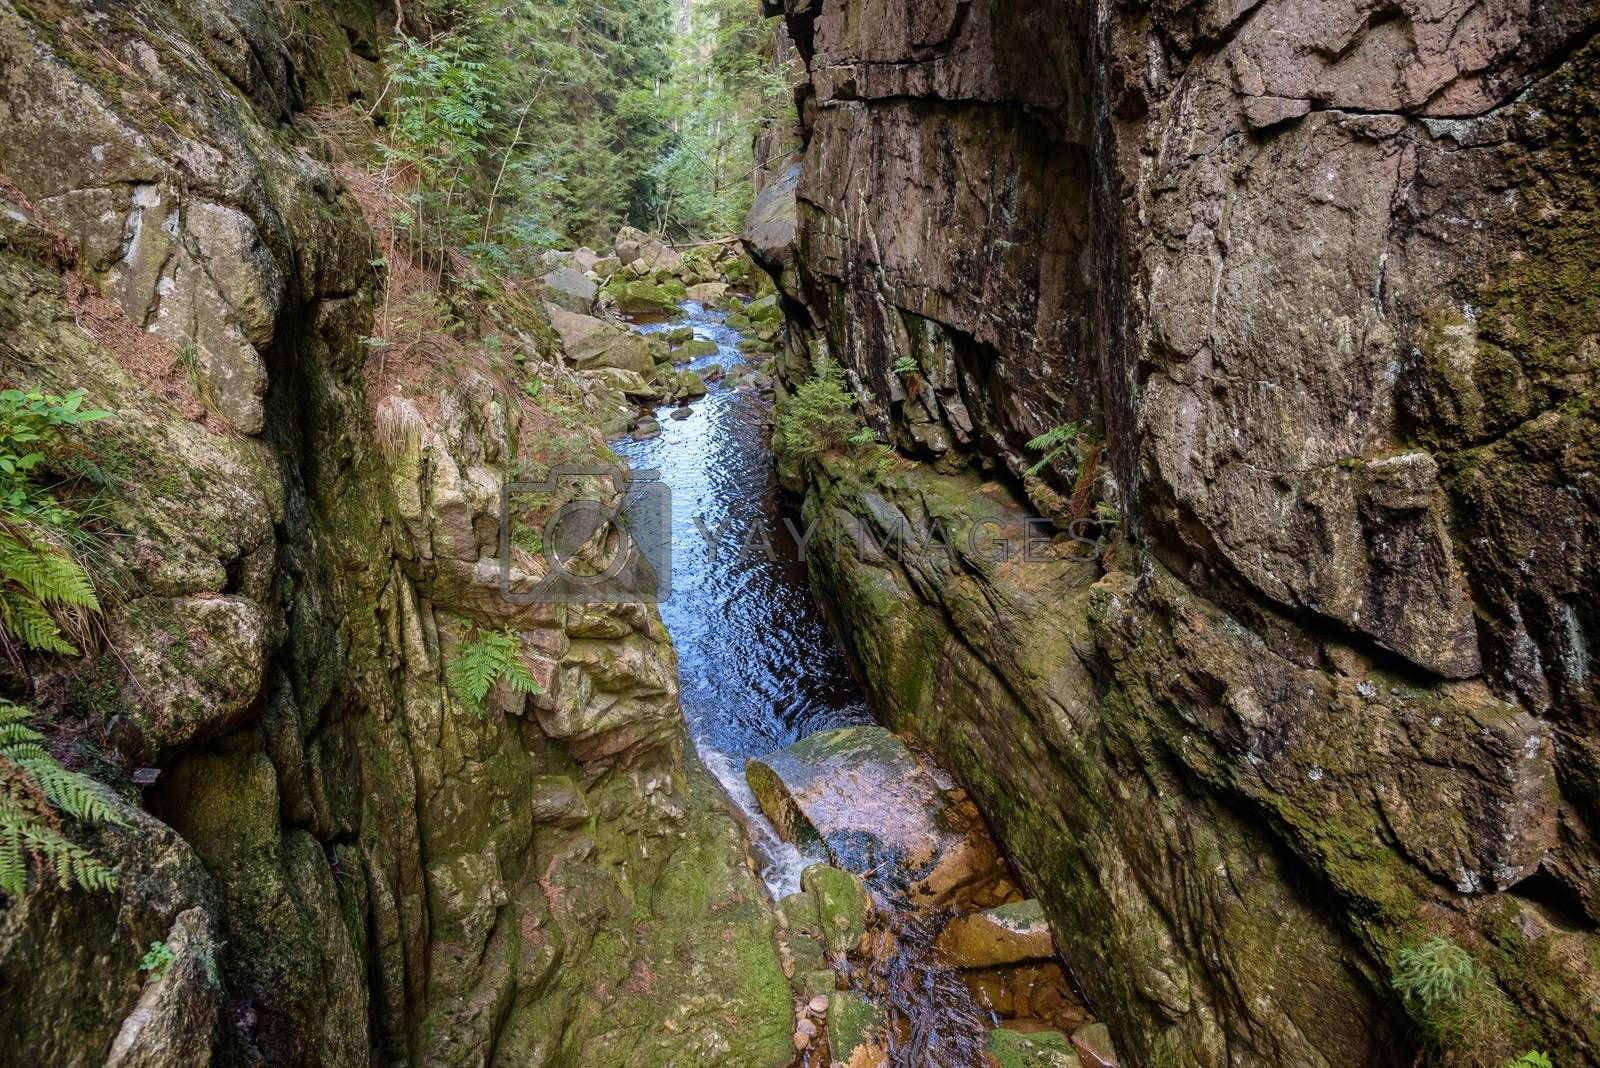 Gorge of Kamienczyk river in polish Giant Mountains